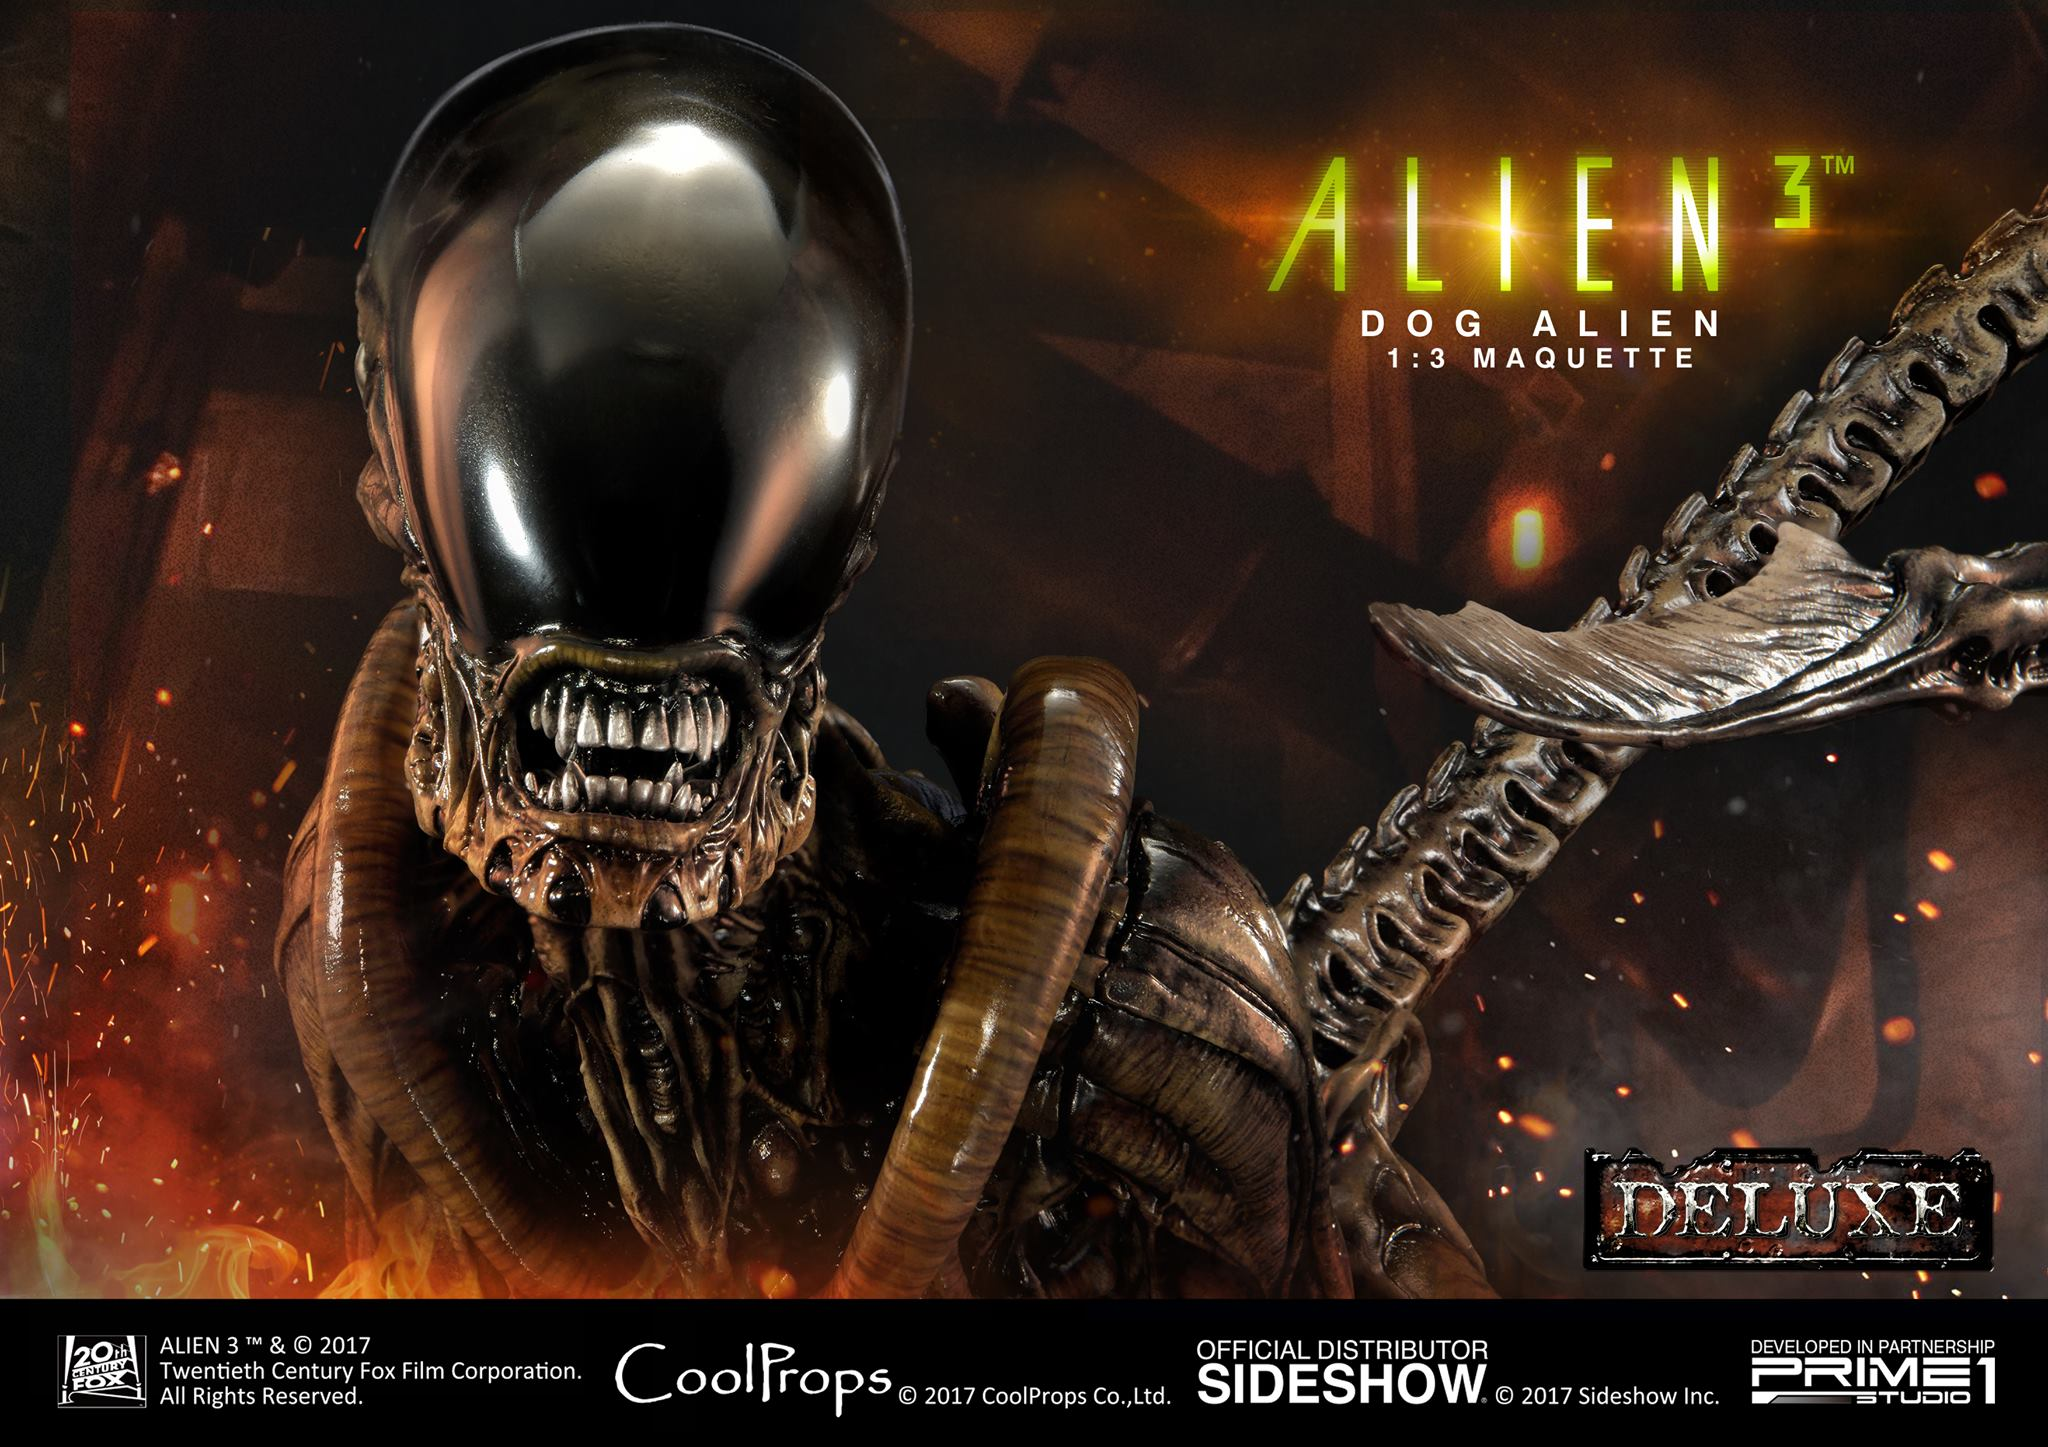 Prime 1 Studio and CoolProps Team Up For Alien 3 Dog Alien Statue